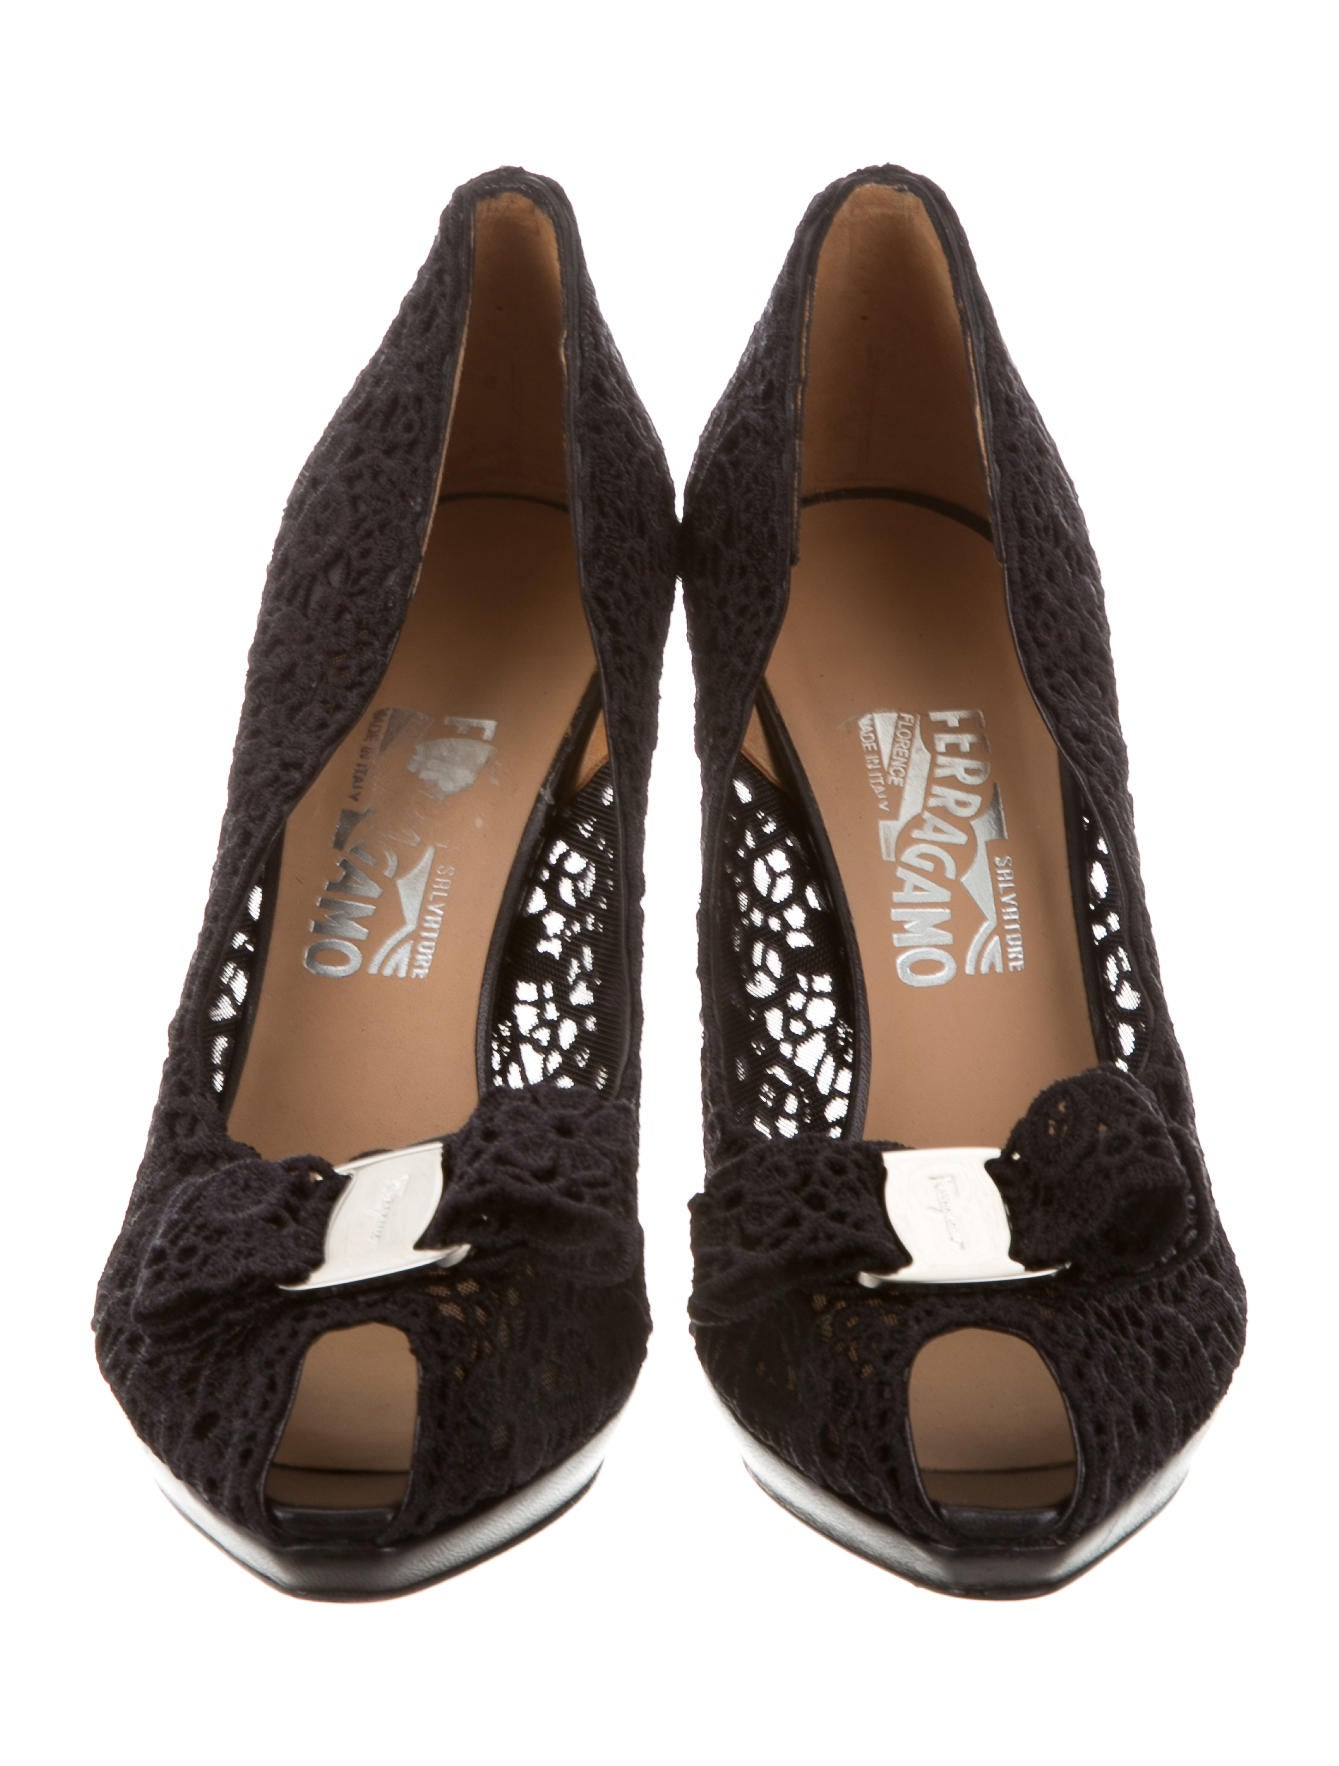 salvatore ferragamo vara lace pumps shoes sal49874 the realreal. Black Bedroom Furniture Sets. Home Design Ideas